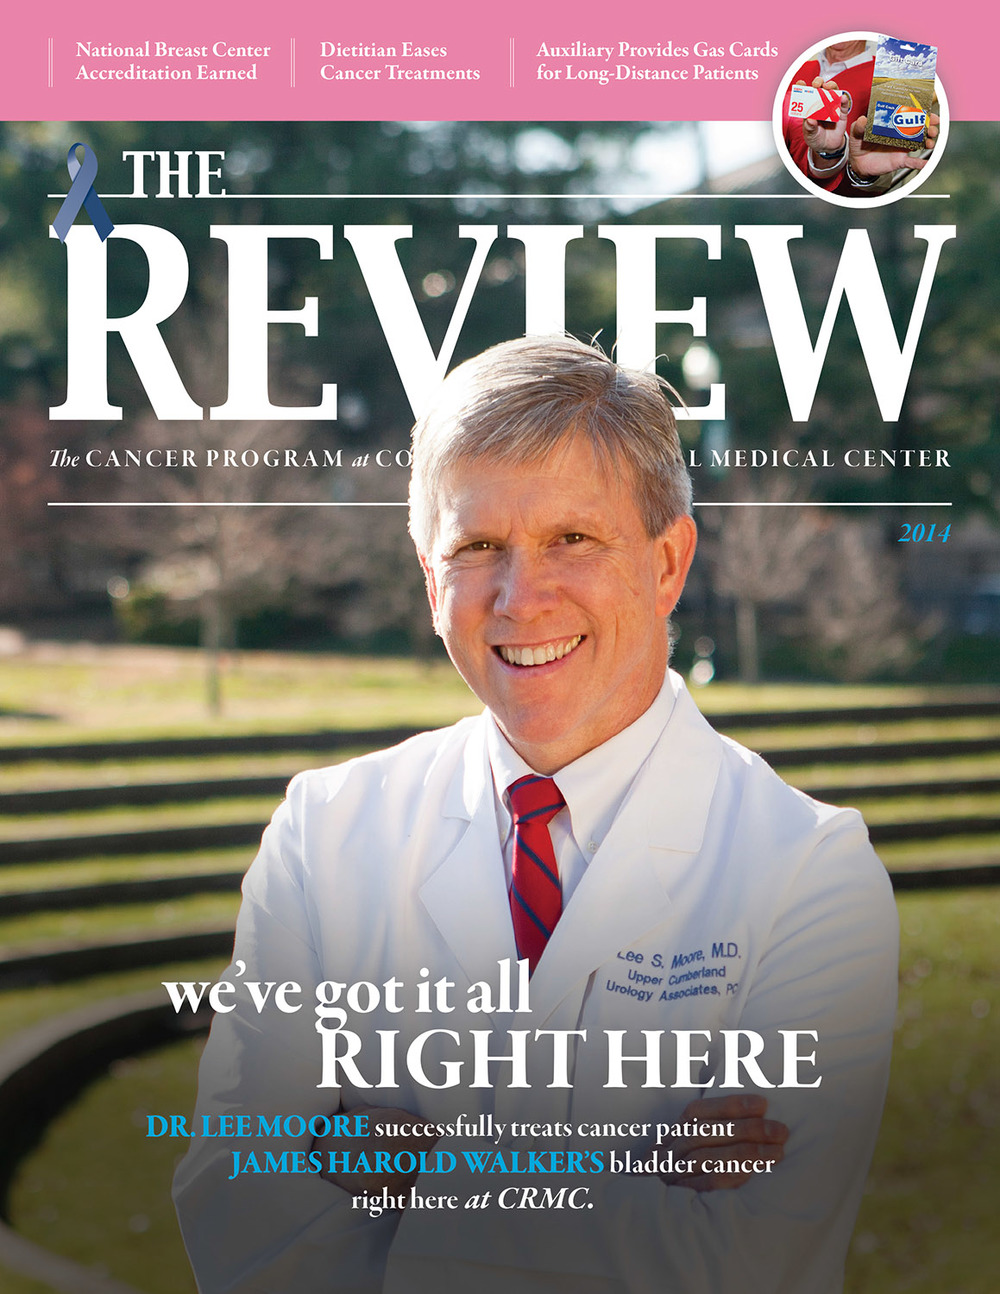 CRMC_Cancer_Review_2014_Ron_Baker.jpg